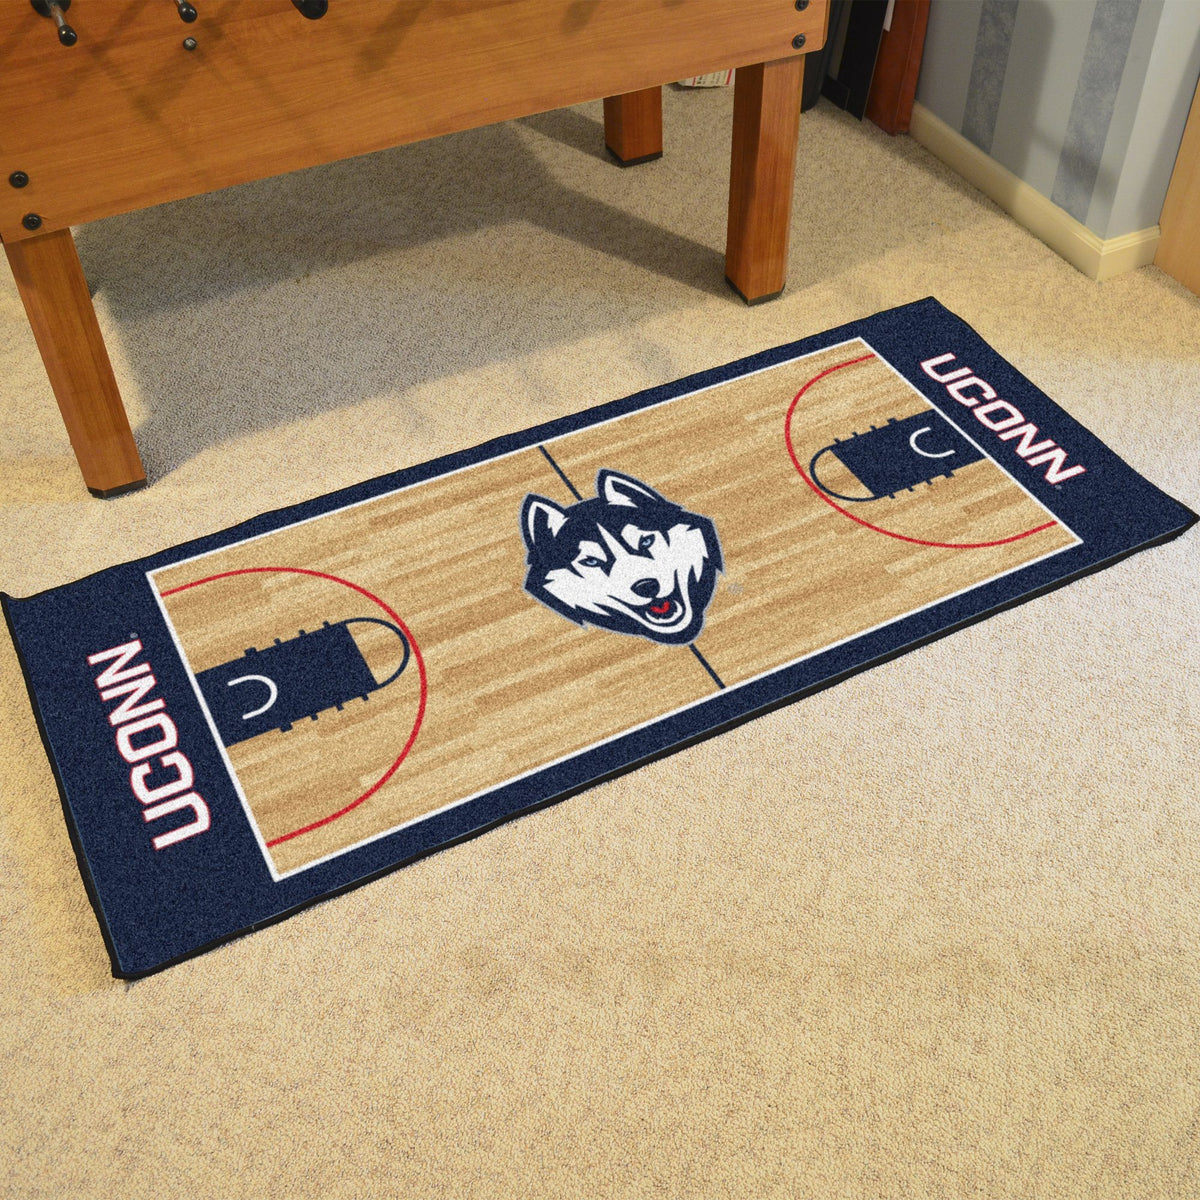 Collegiate - NCAA Basketball Runner Collegiate Mats, Rectangular Mats, NCAA Basketball Runner, Collegiate, Home Fan Mats Connecticut